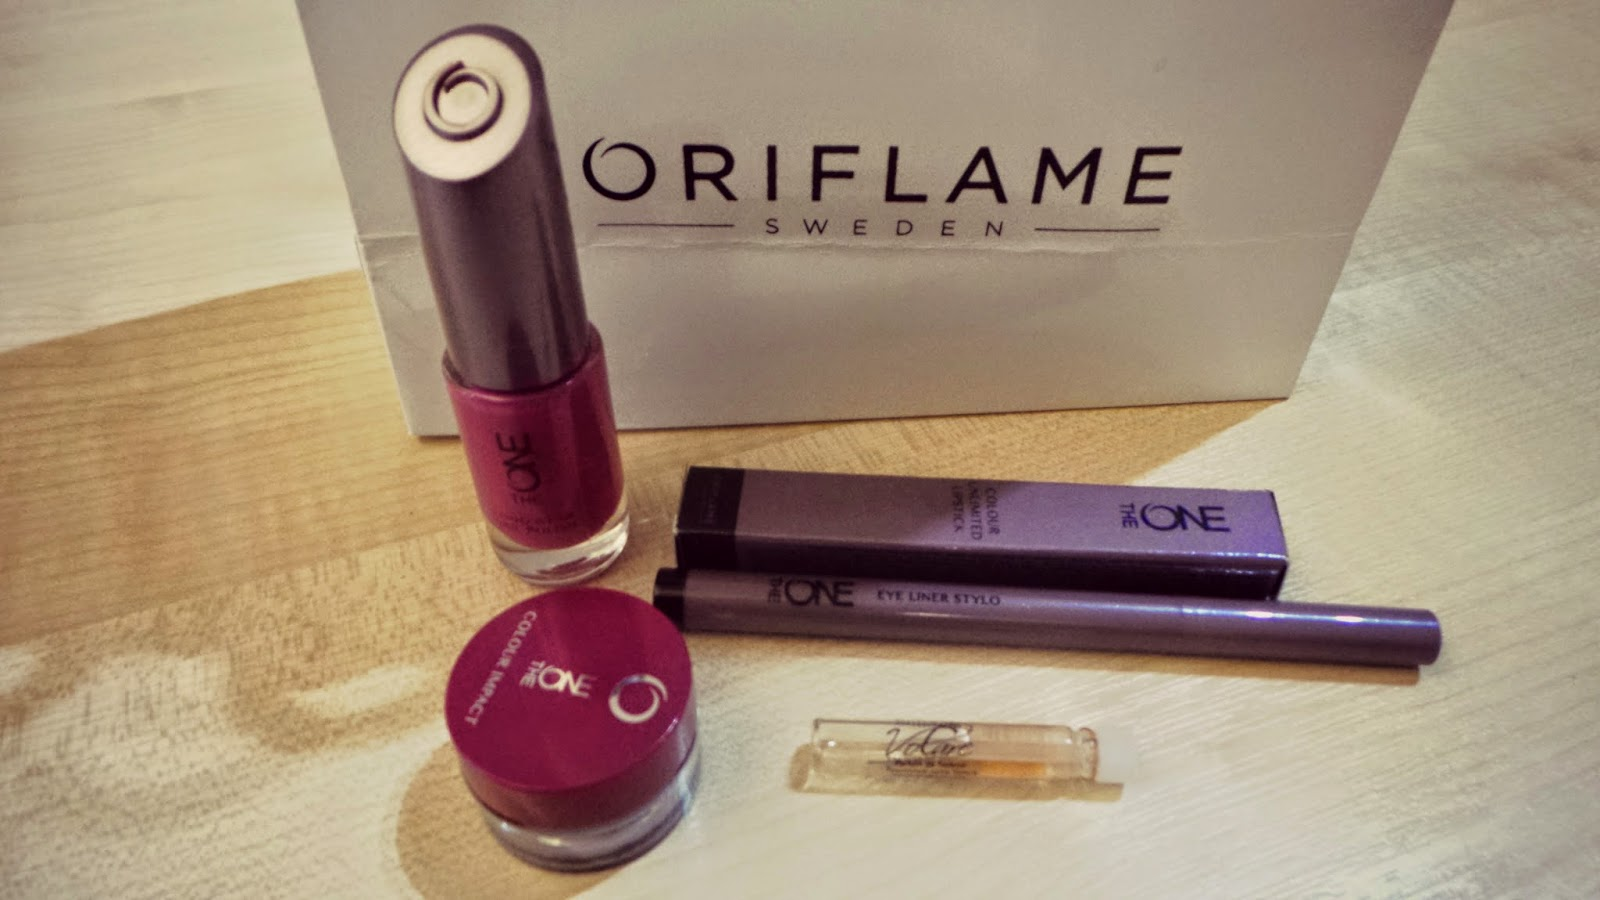 oriflame event goody bag